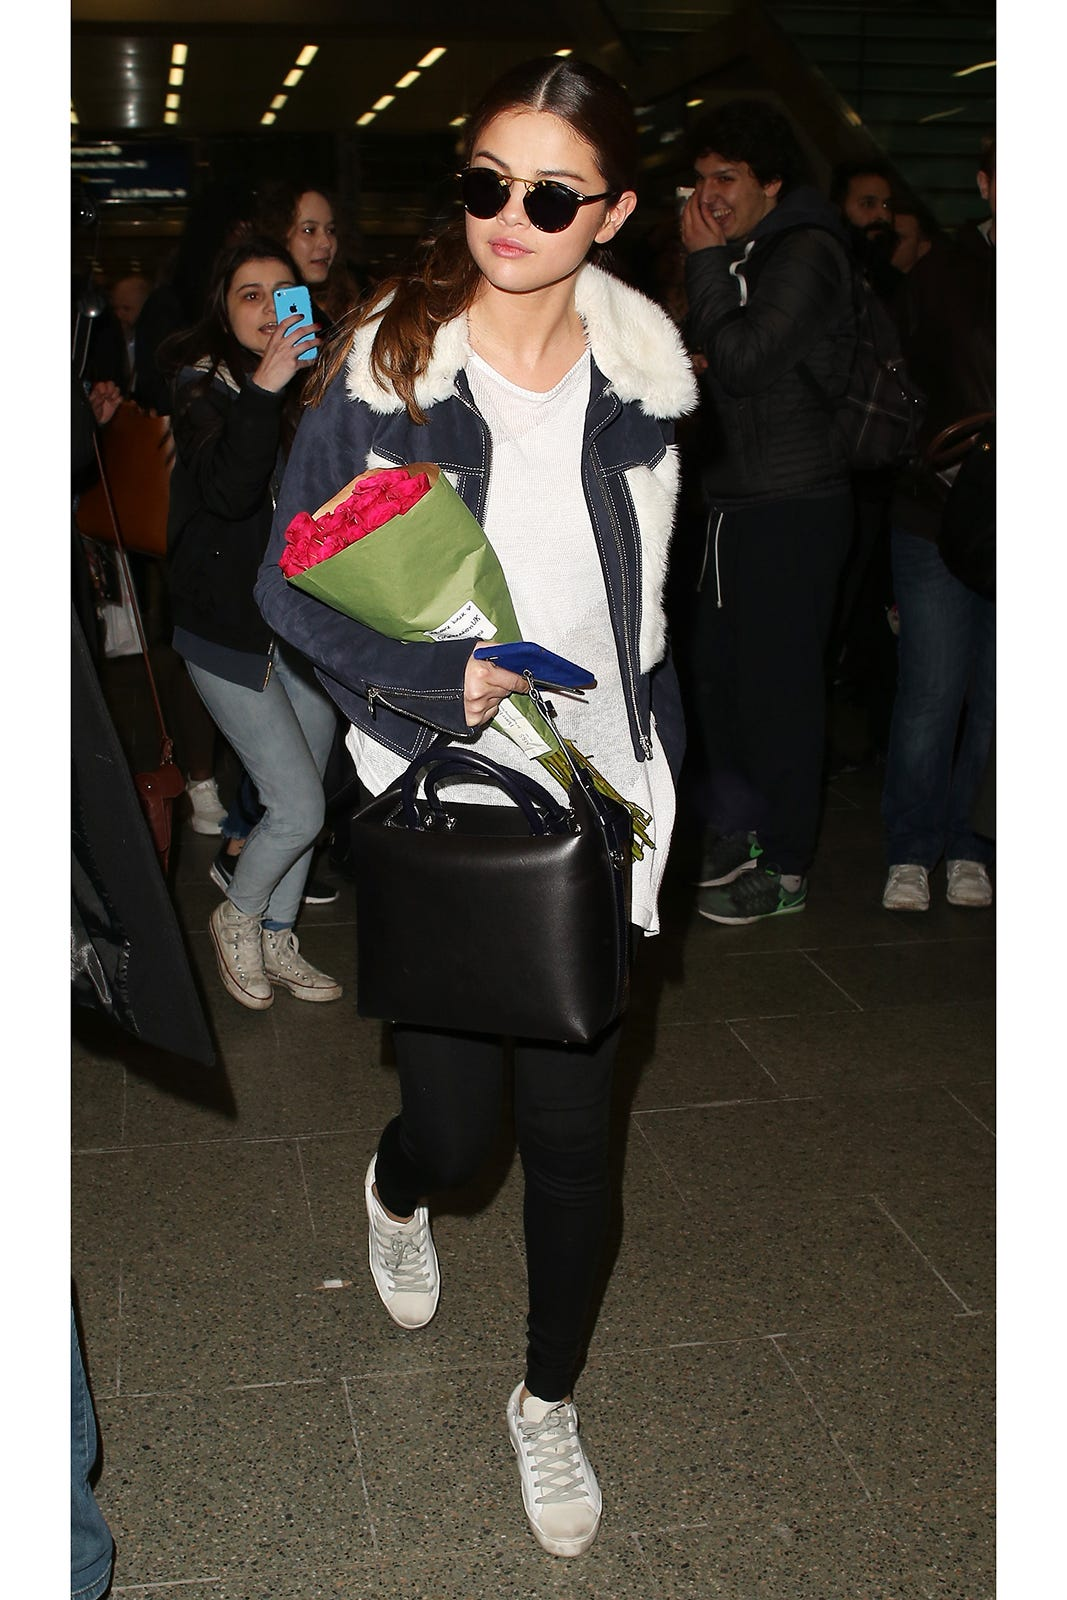 d563907961f9cc United Outrage - Celebrity Leggings Airport Outfits